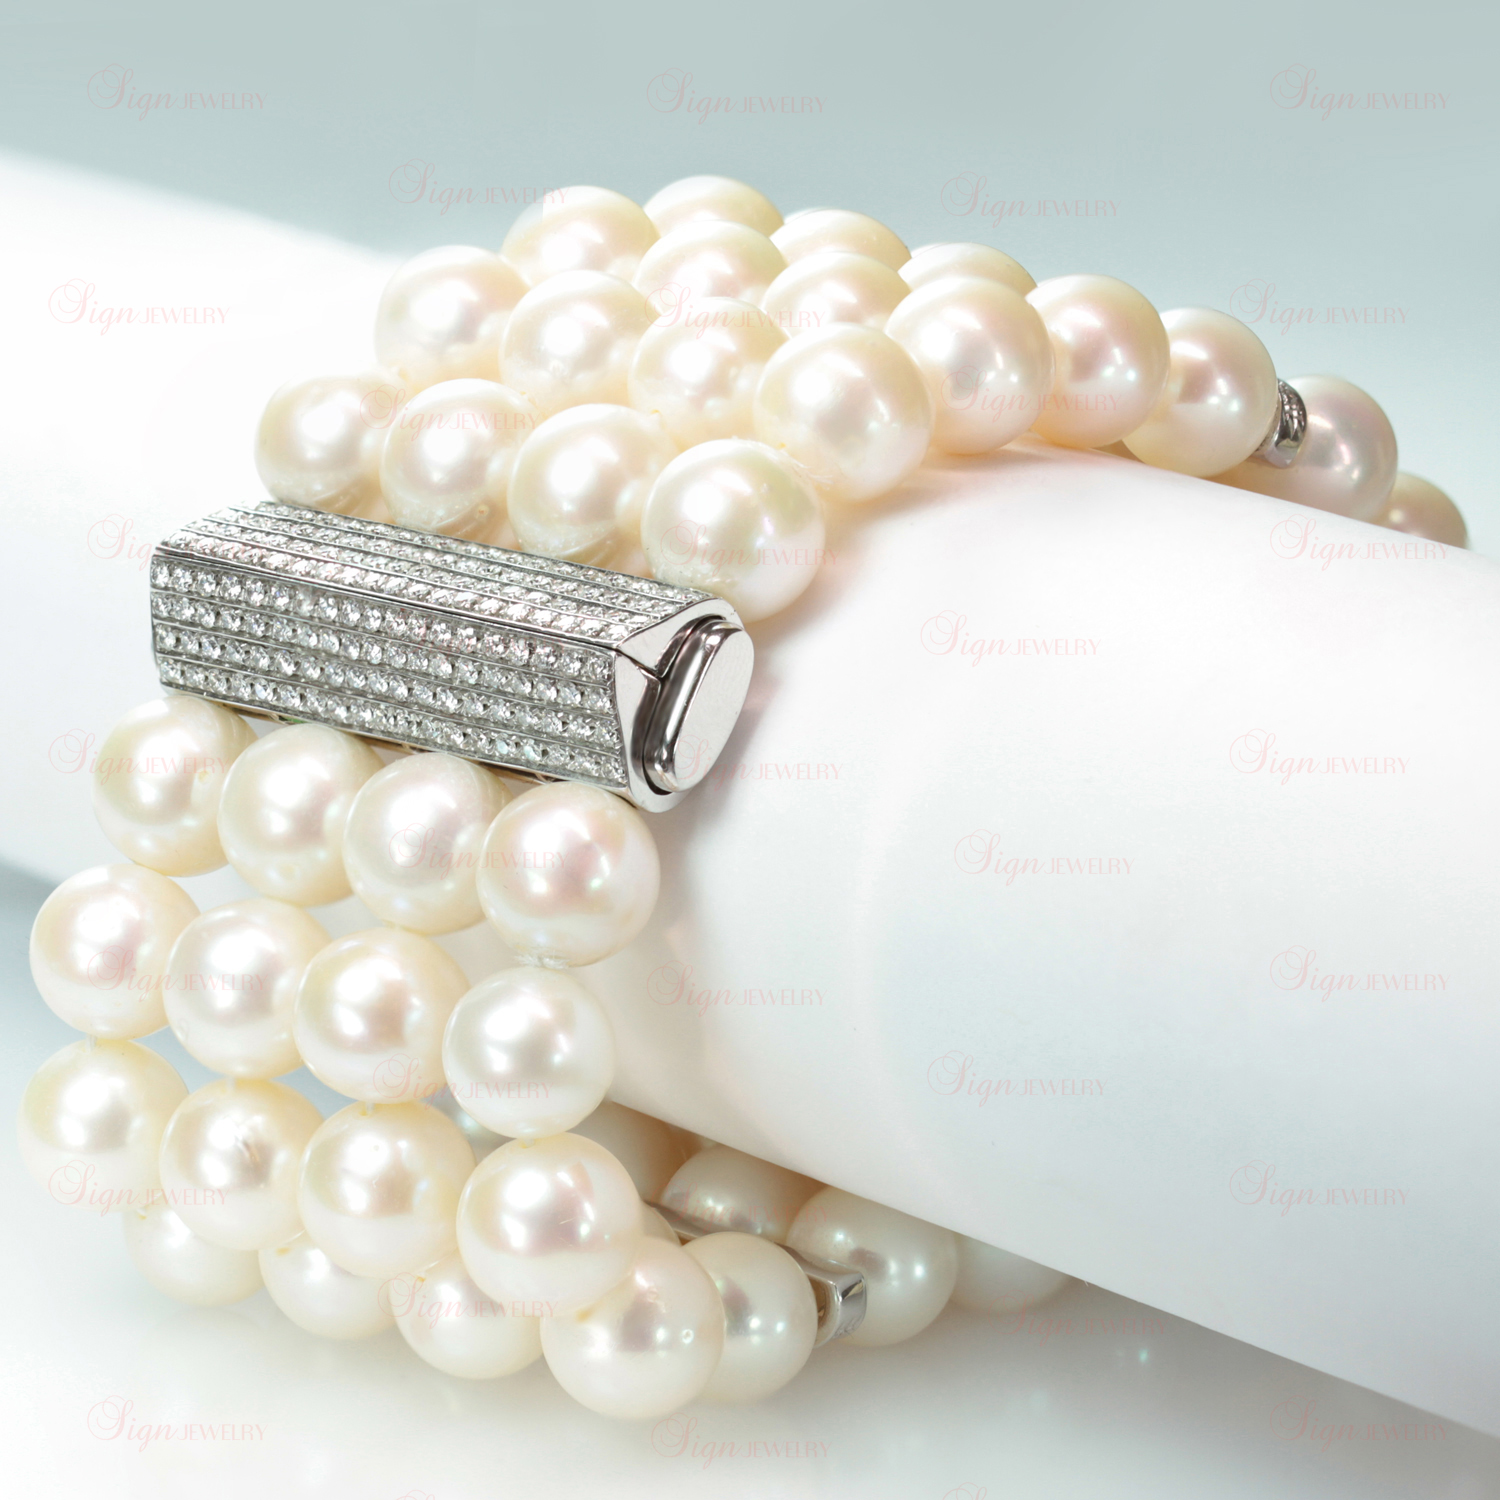 attos gold diamond full estate white pearl f jewelry click bracelet item and to expand